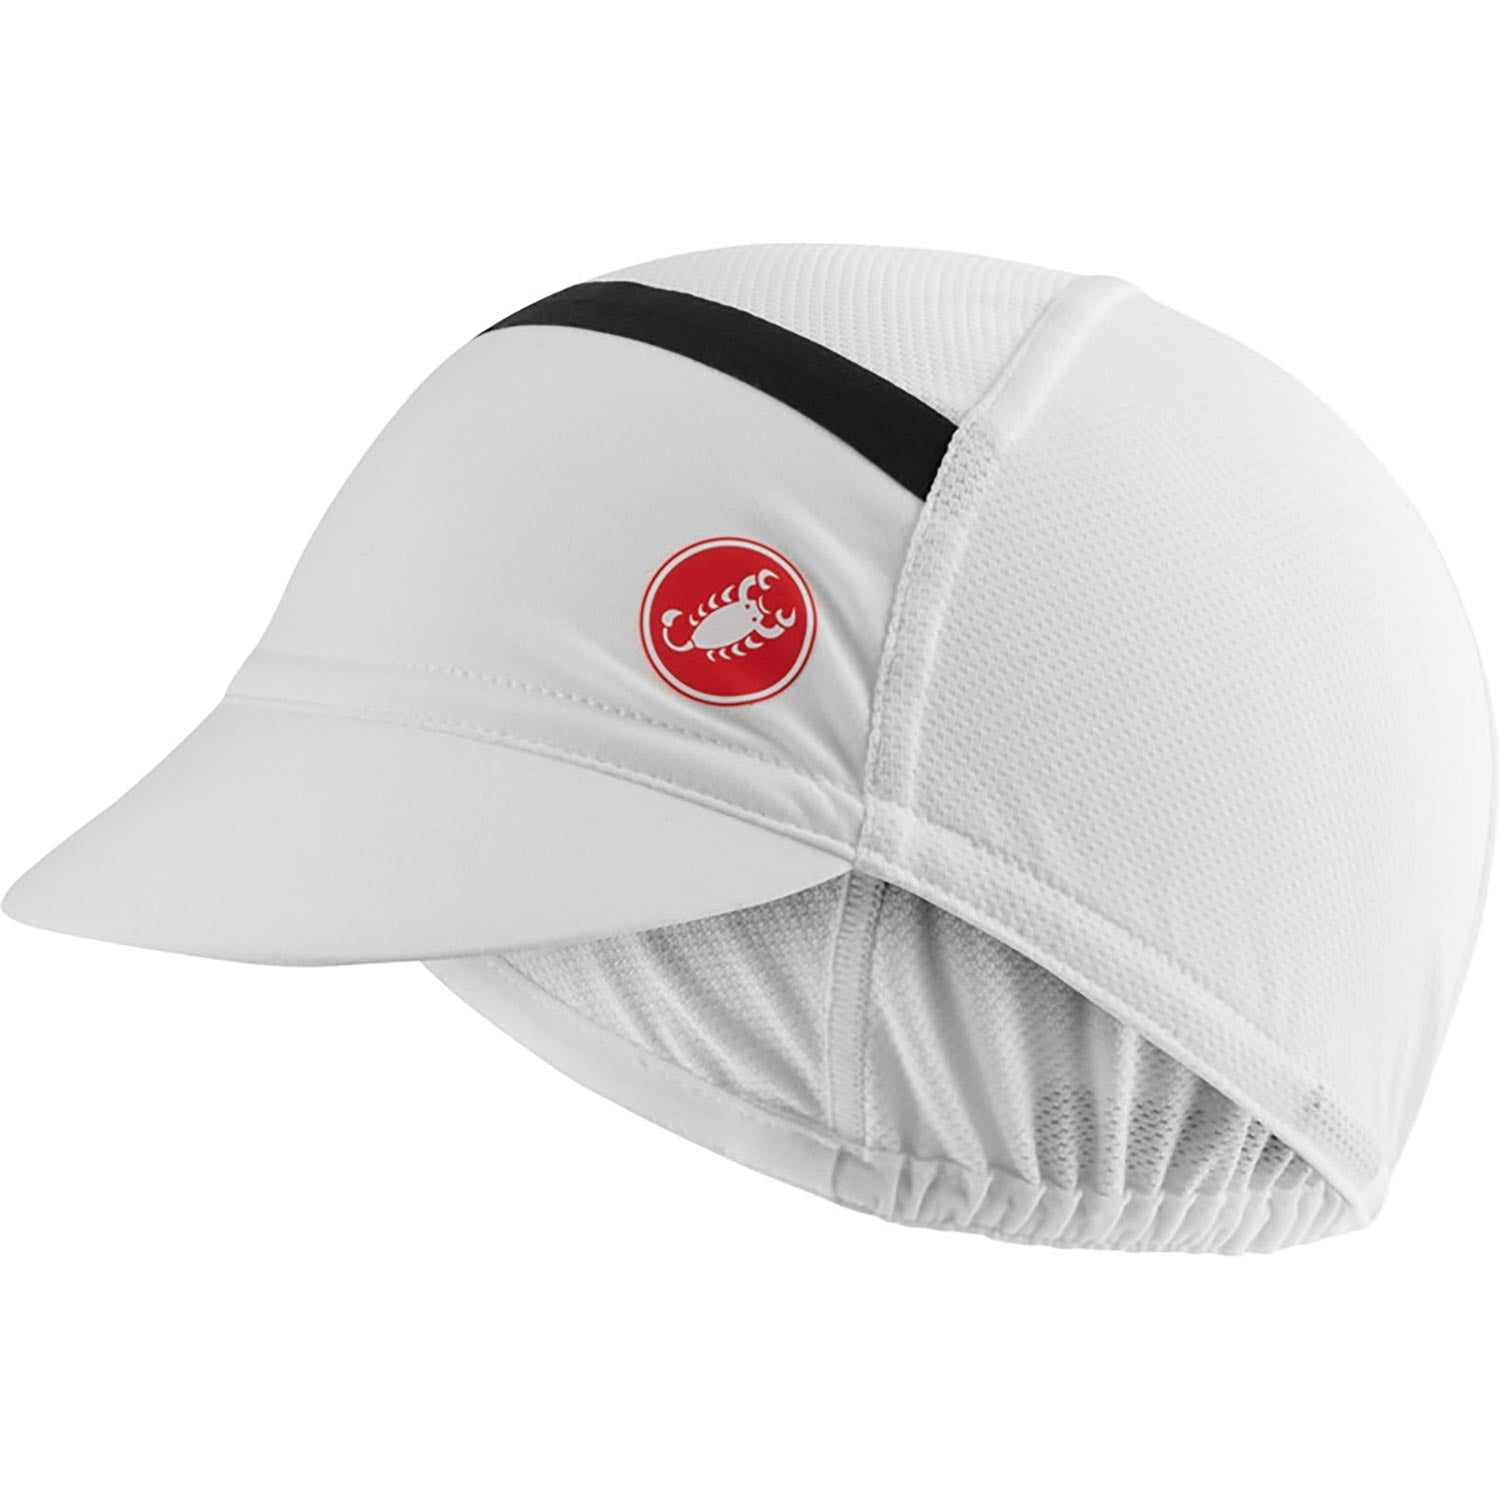 Castelli-Castelli Ombra Cycling Cap-White-UNI-CS210340018-saddleback-elite-performance-cycling